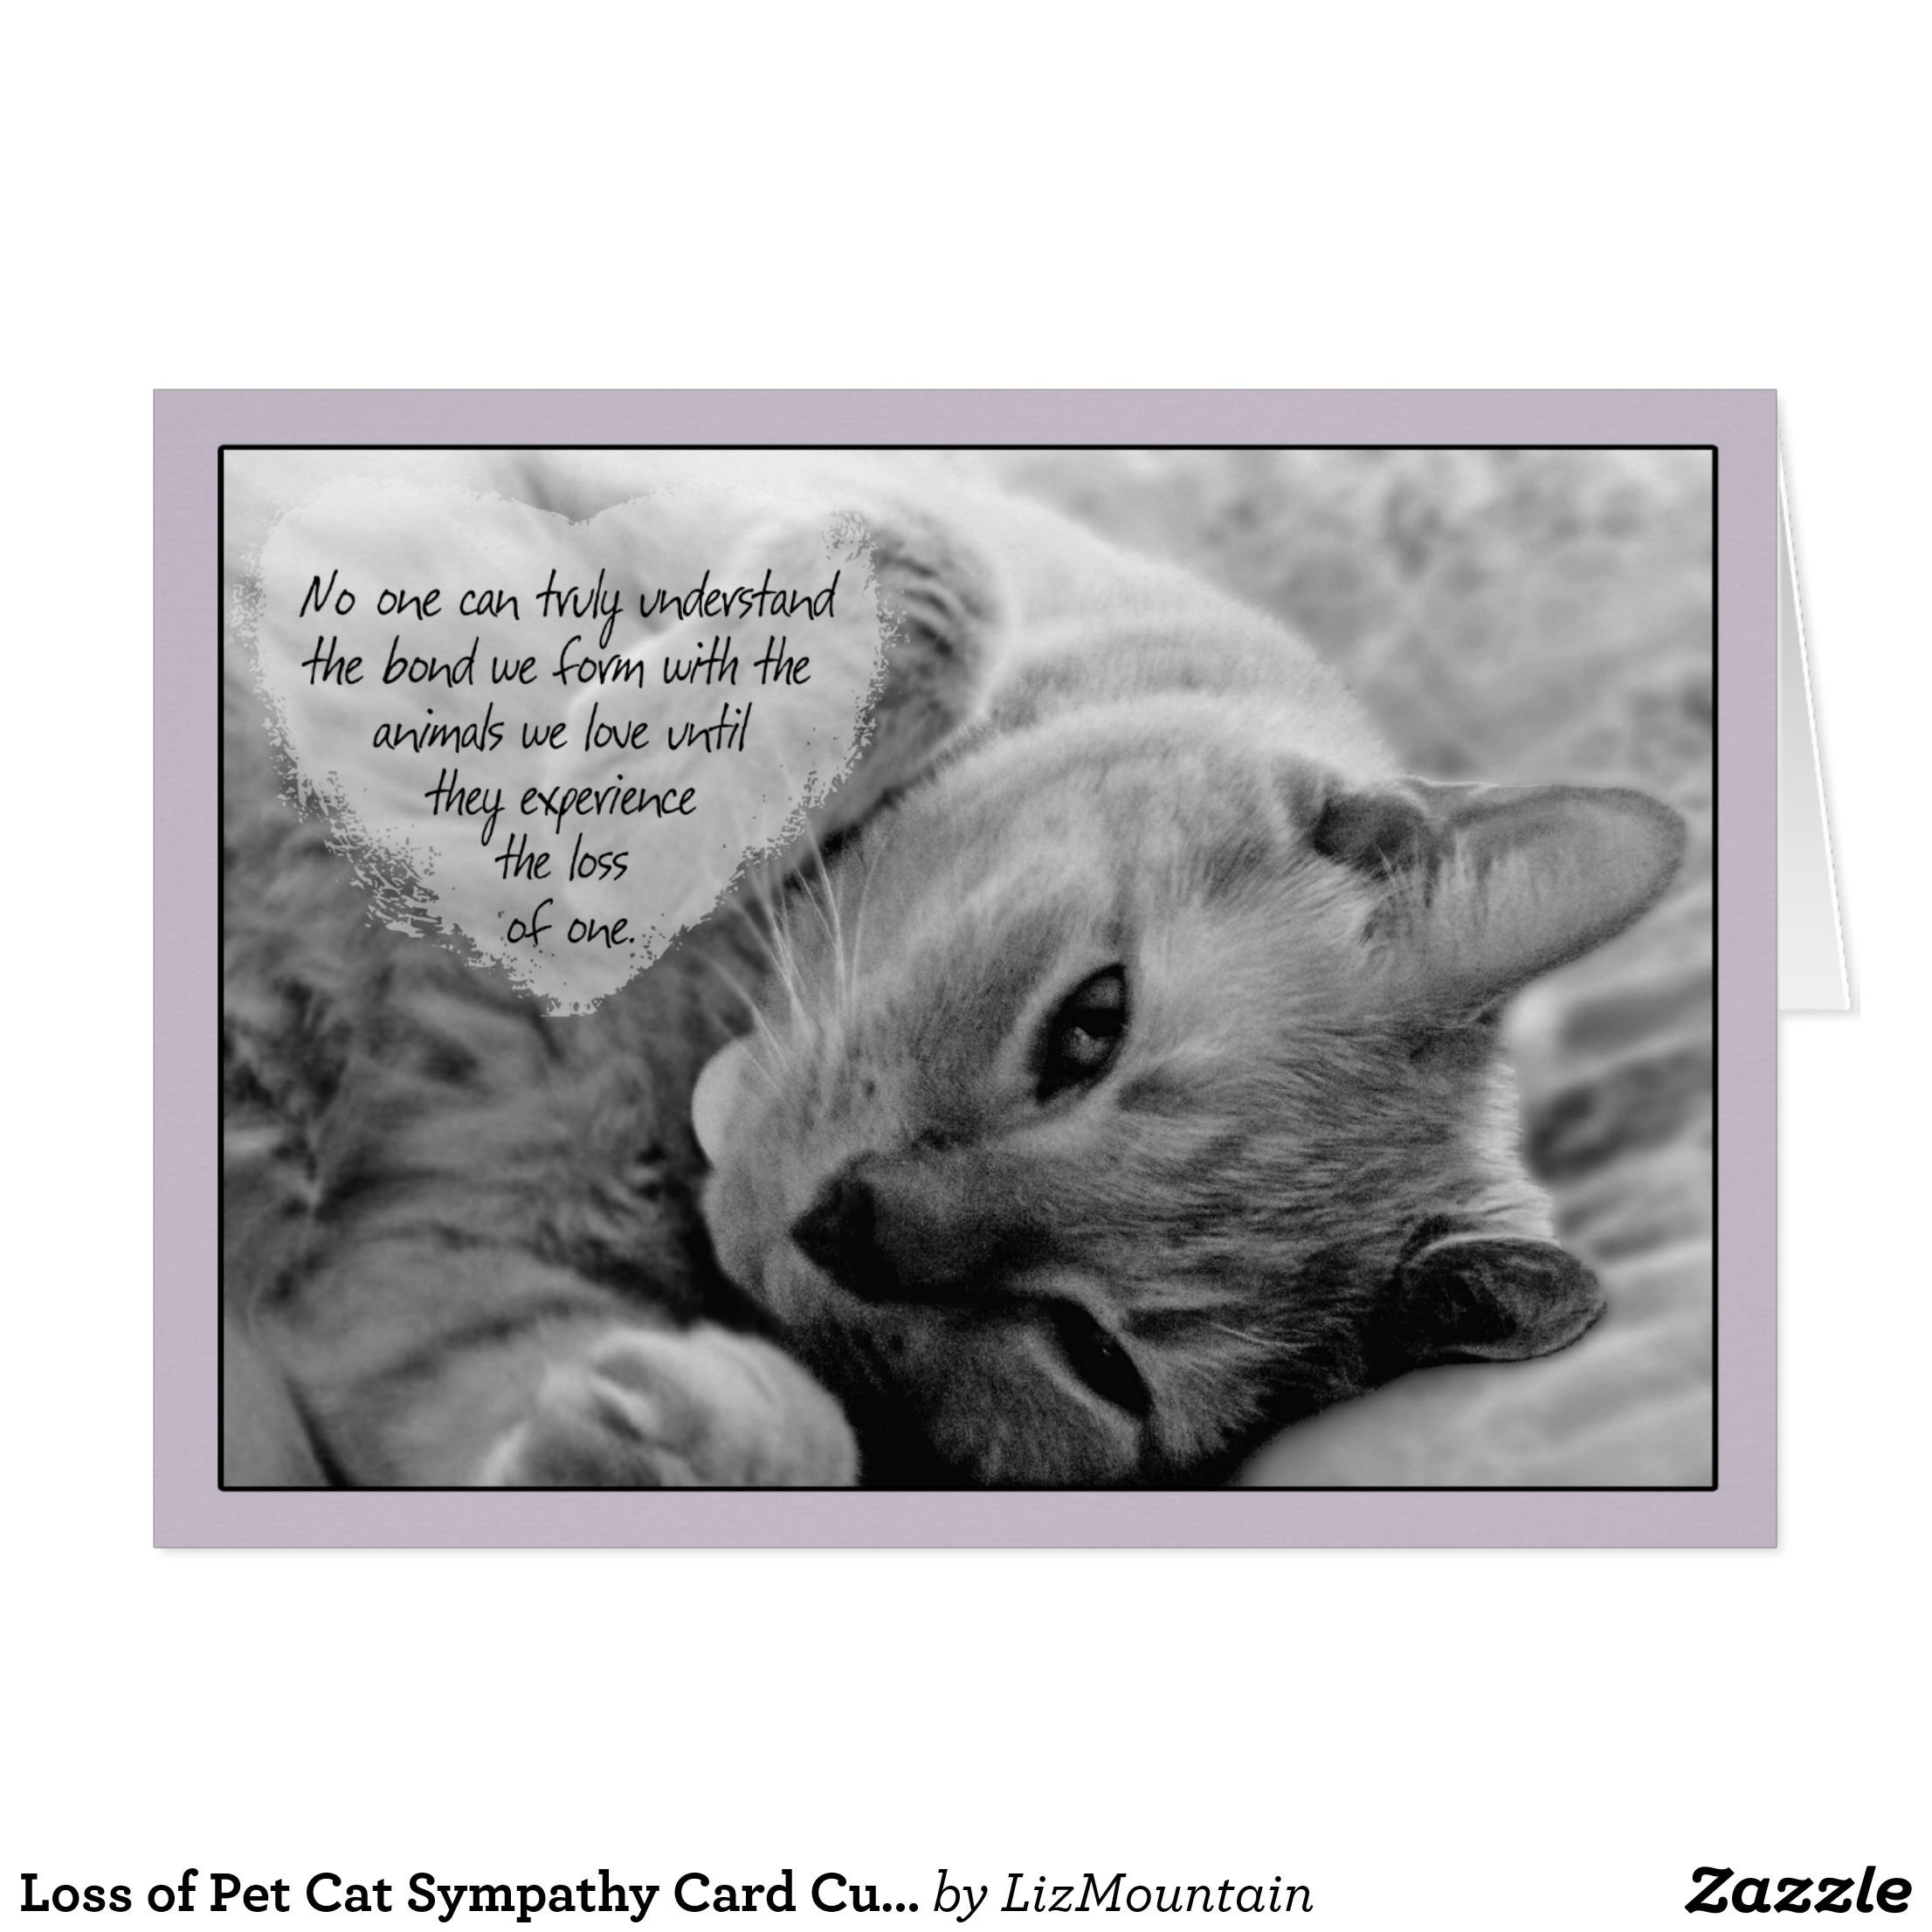 Zazzle Custom Cards - Sympathy Card Loss of Cat -Cuddly Cat ...